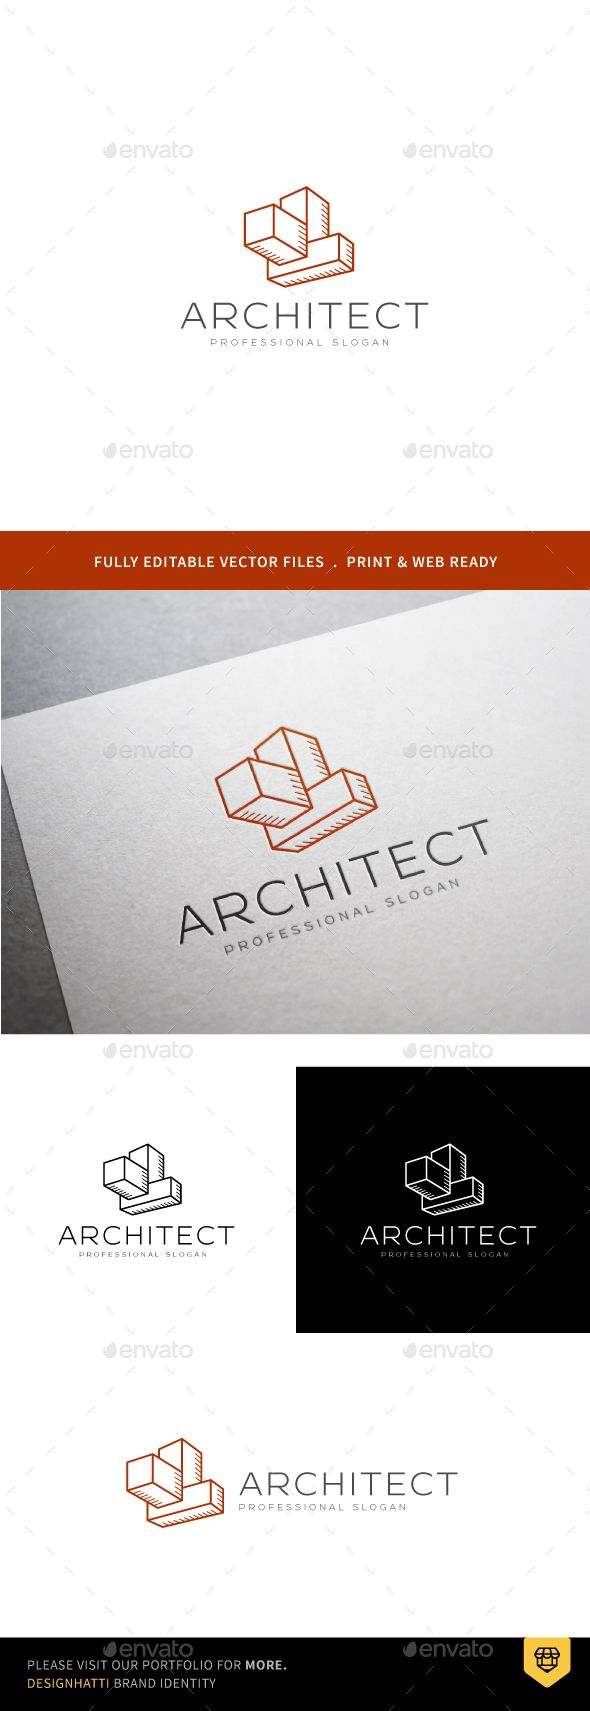 Architect Logo — Photoshop PSD #building #real estate • Available here → https://graphicriver.net/item/architect-logo/18403511?ref=pxcr